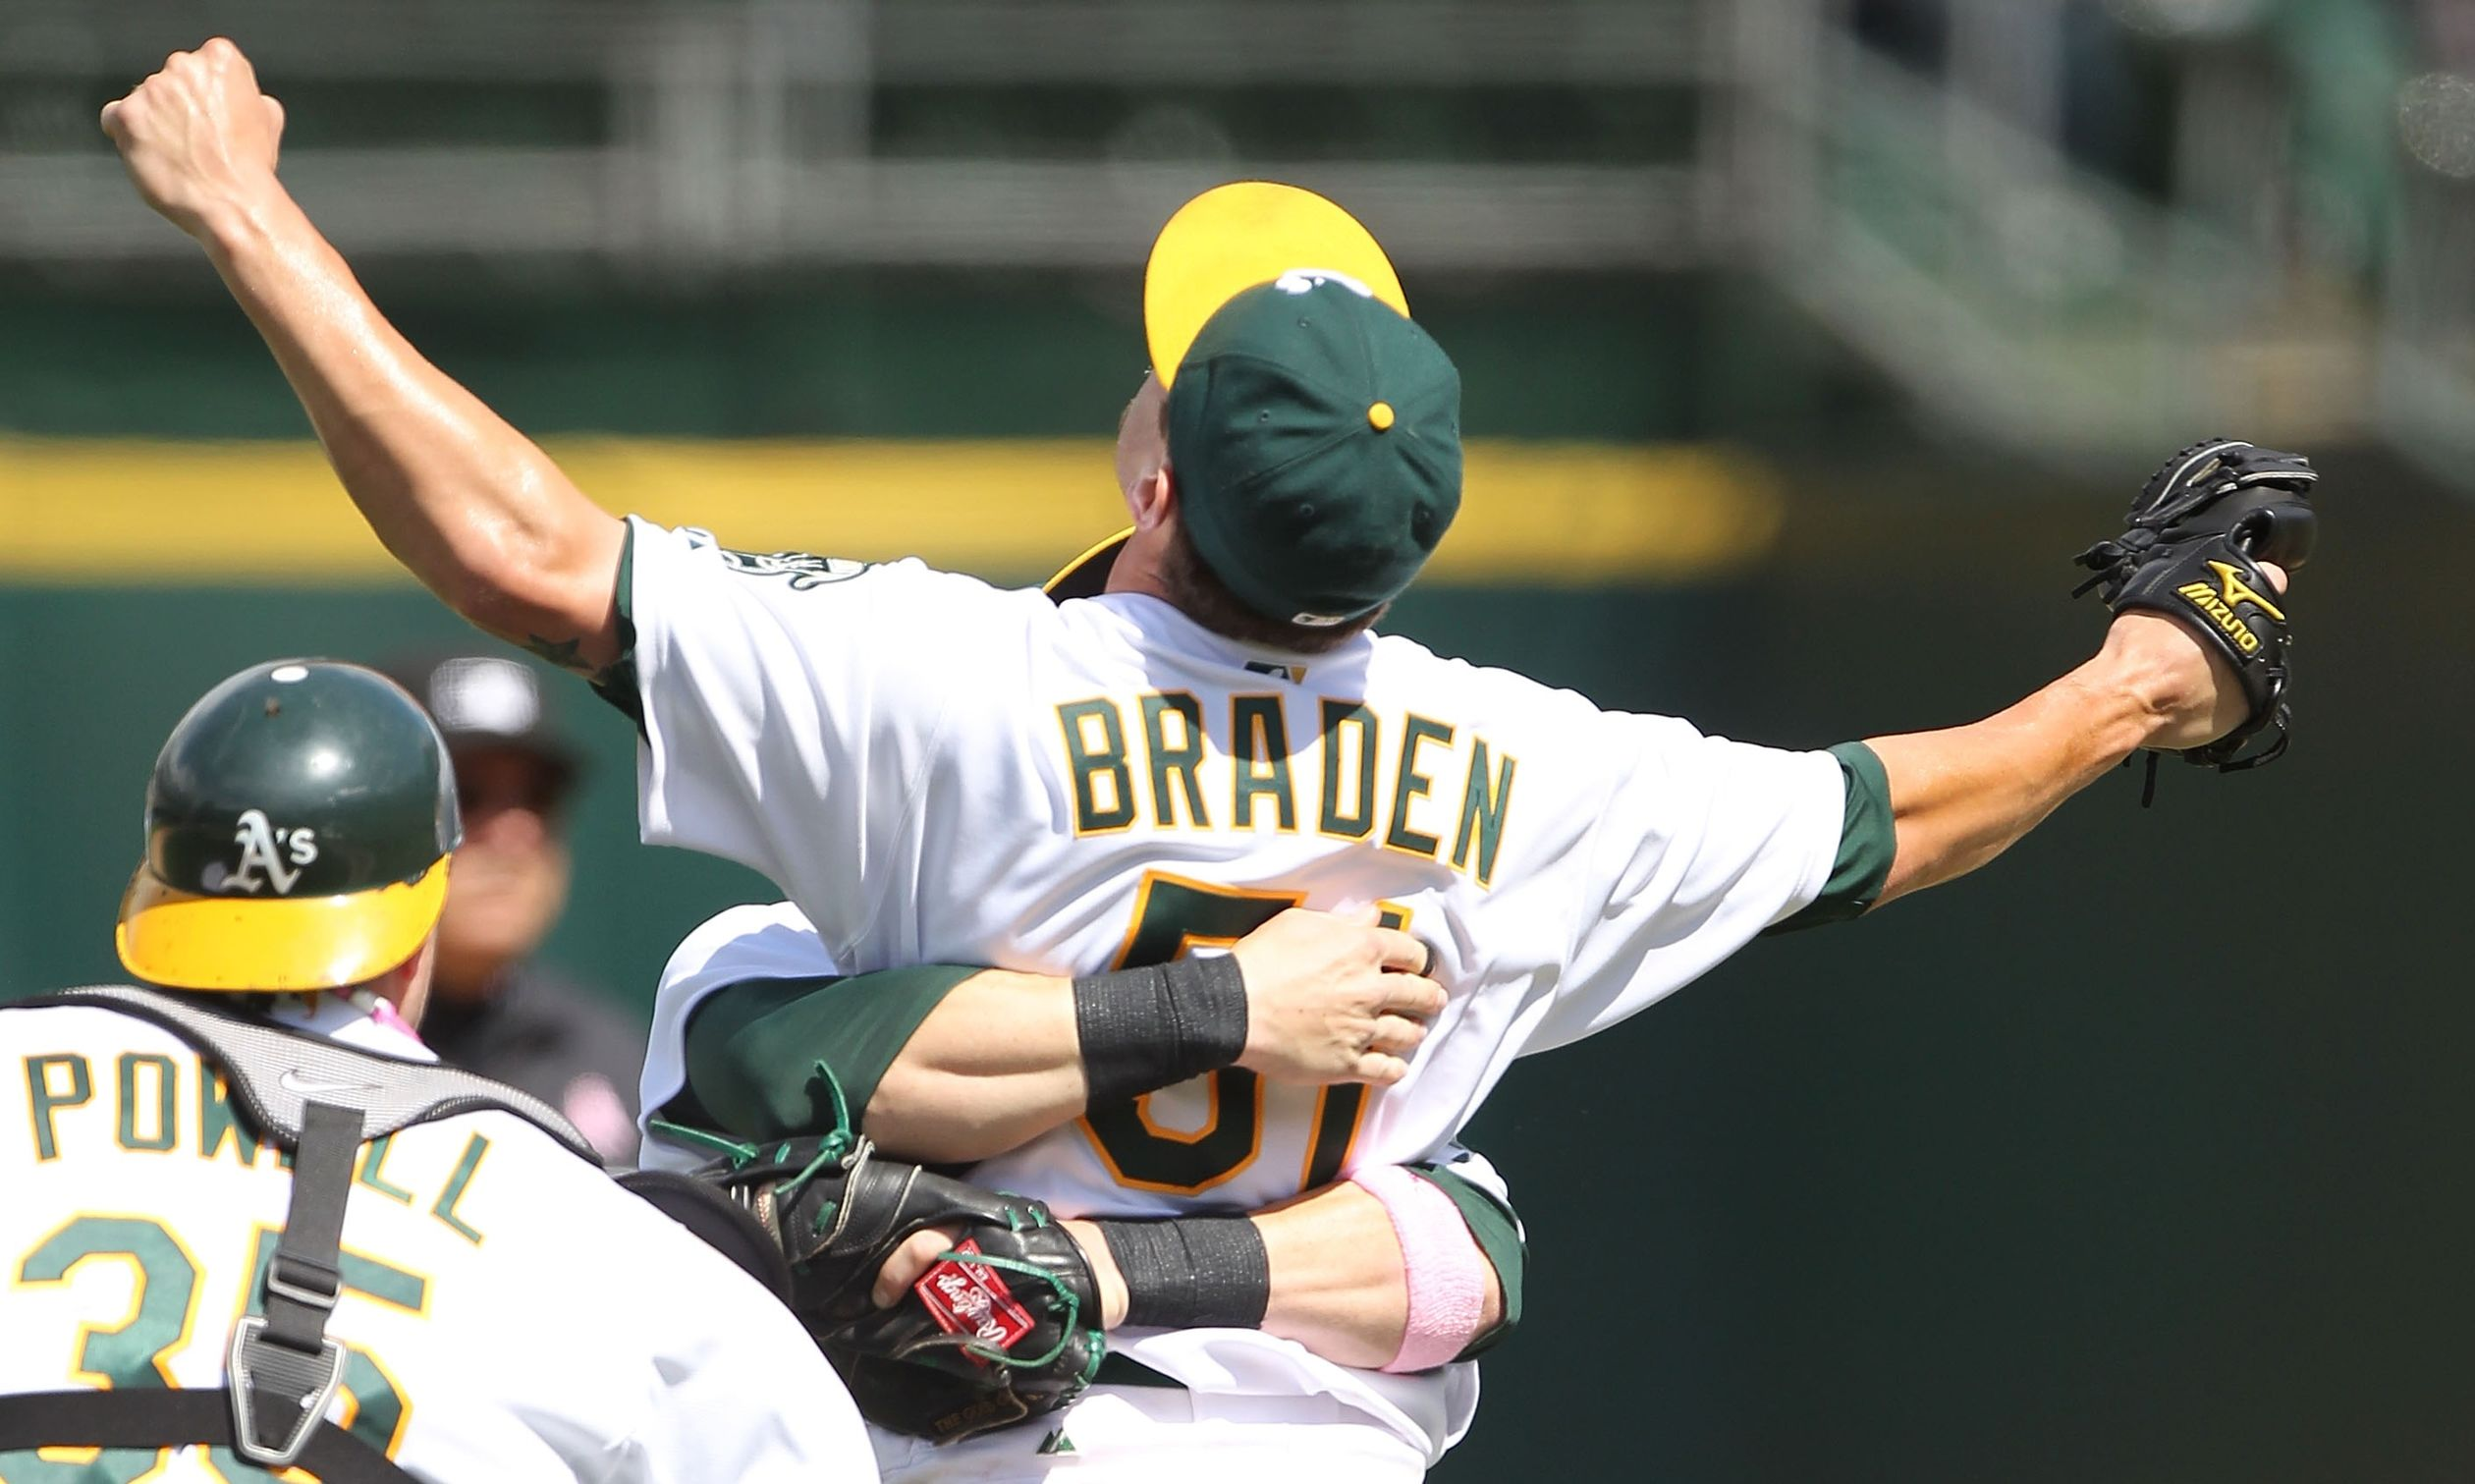 Dallas Braden: May 9 vs. Tampa Bay Rays